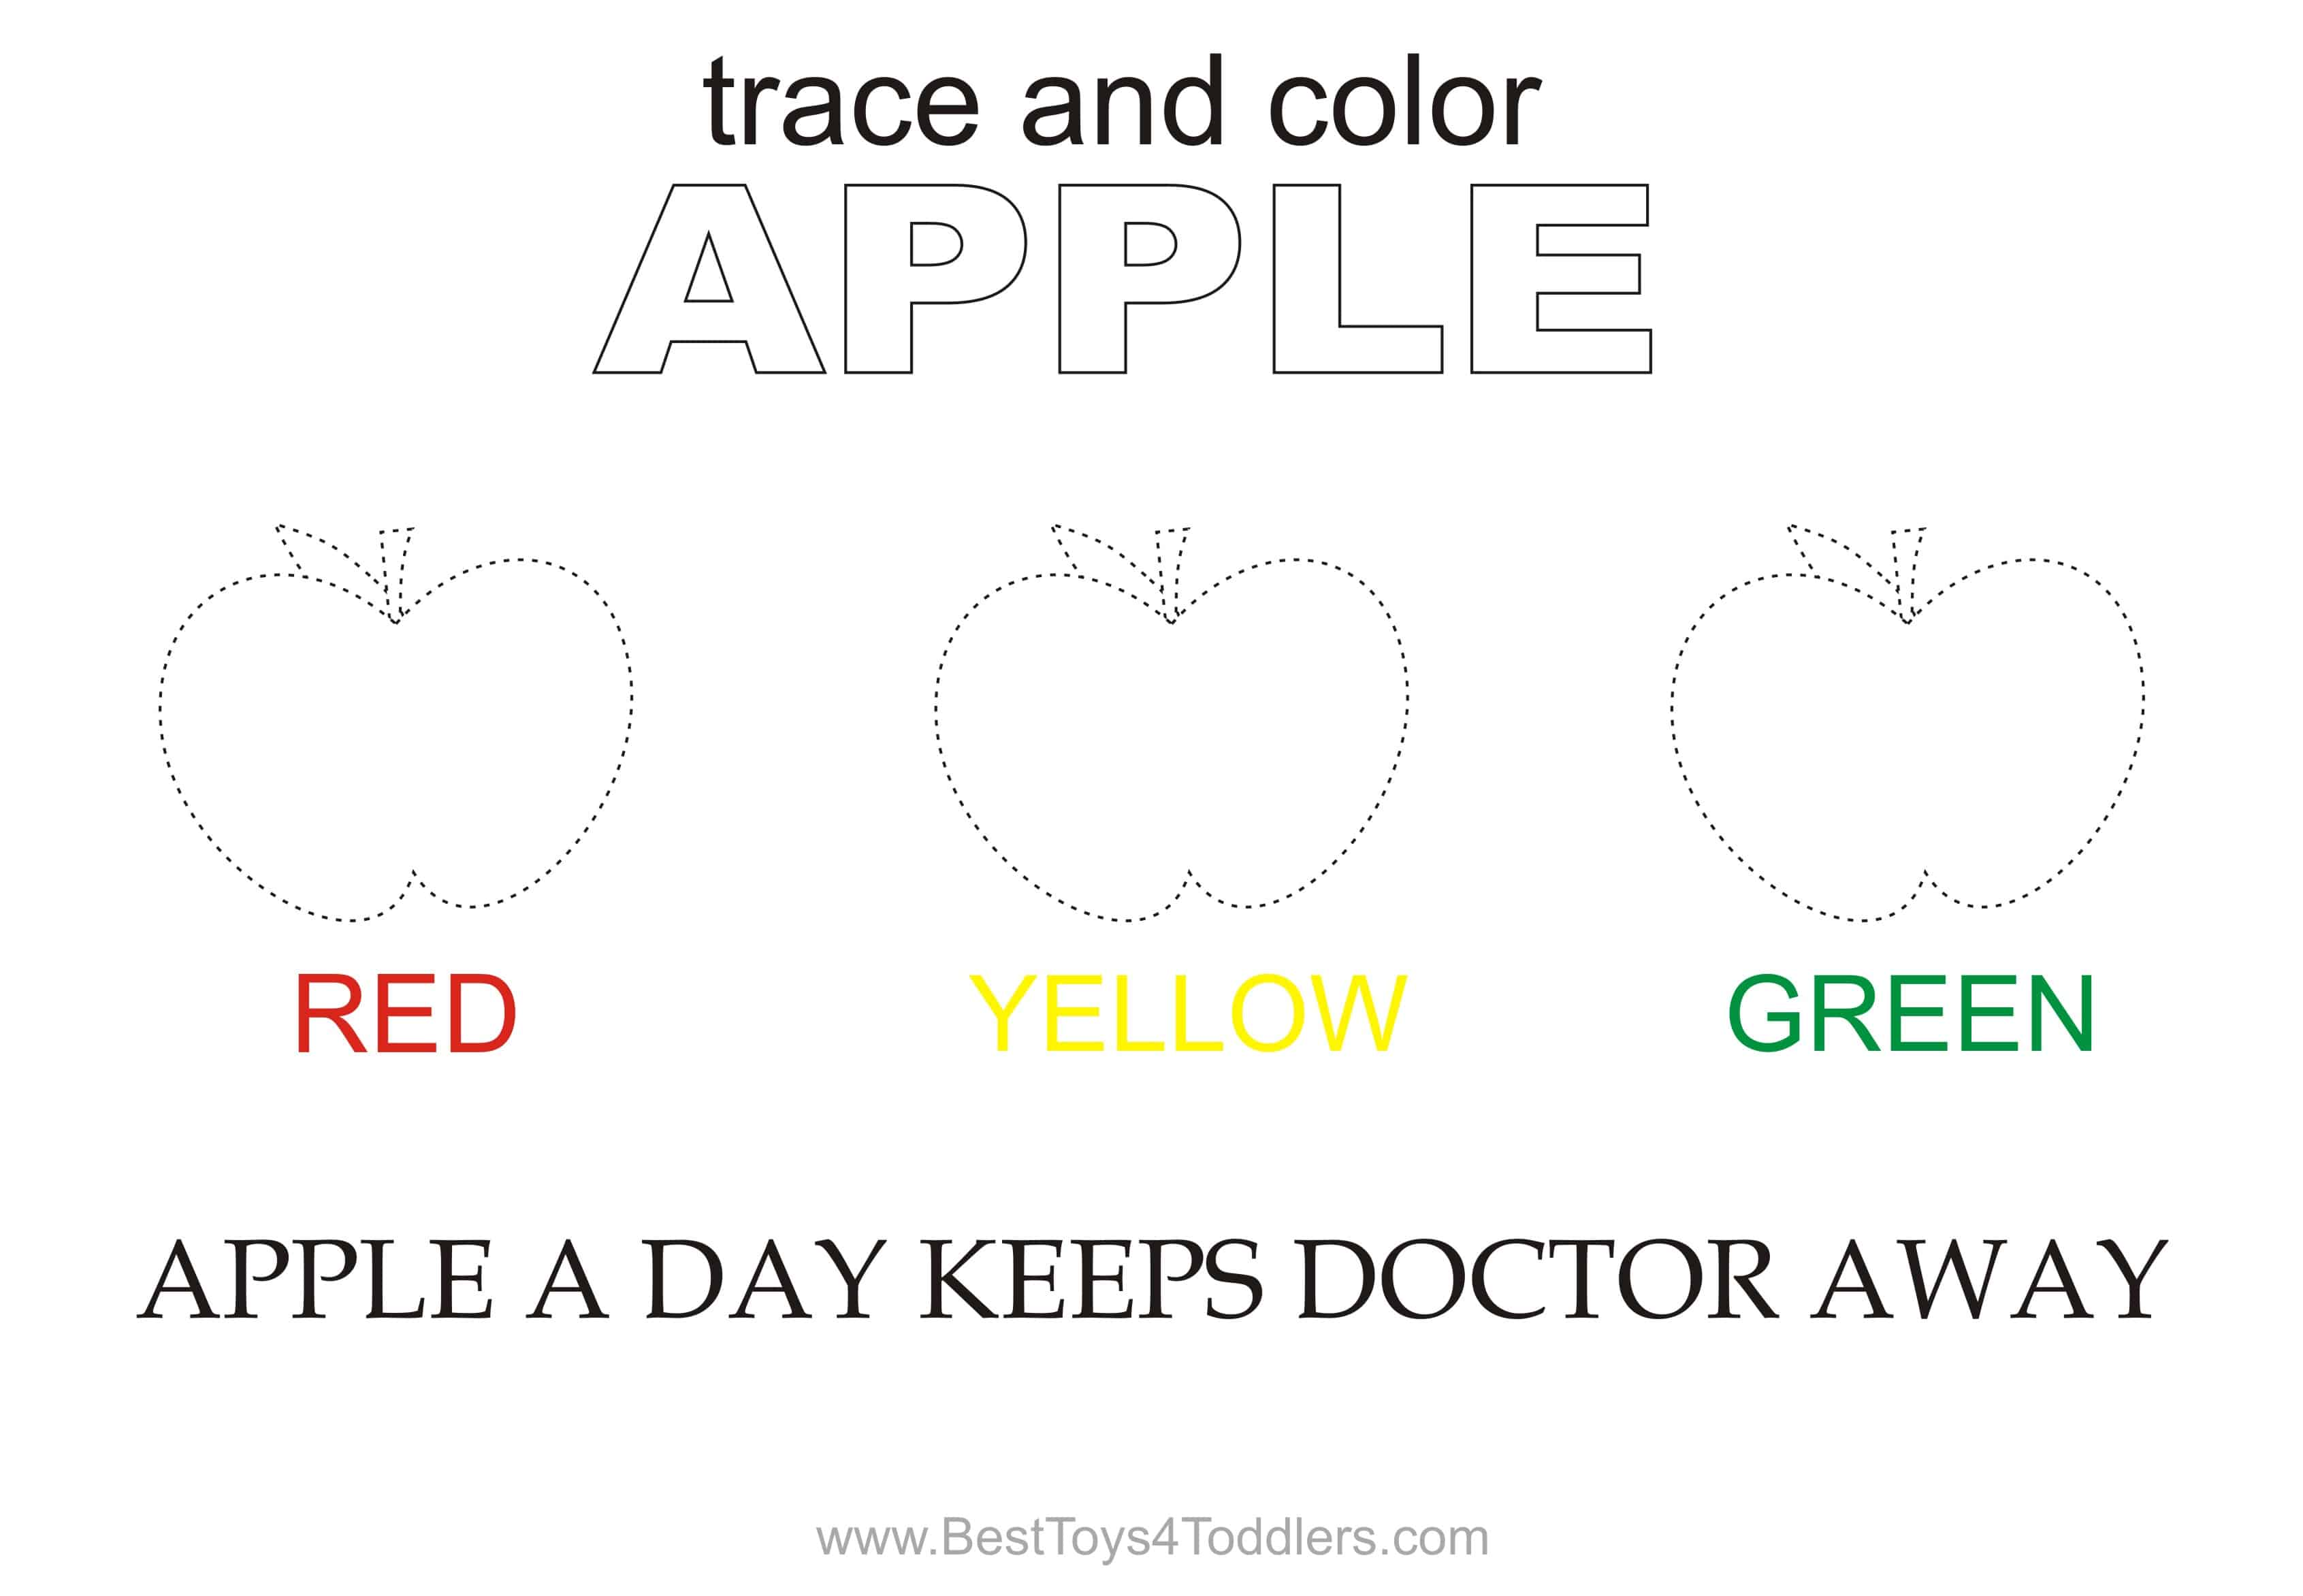 photograph relating to Apple Printable called Apple Hint and Shade Printable Sheet - Easiest Toys 4 Babies